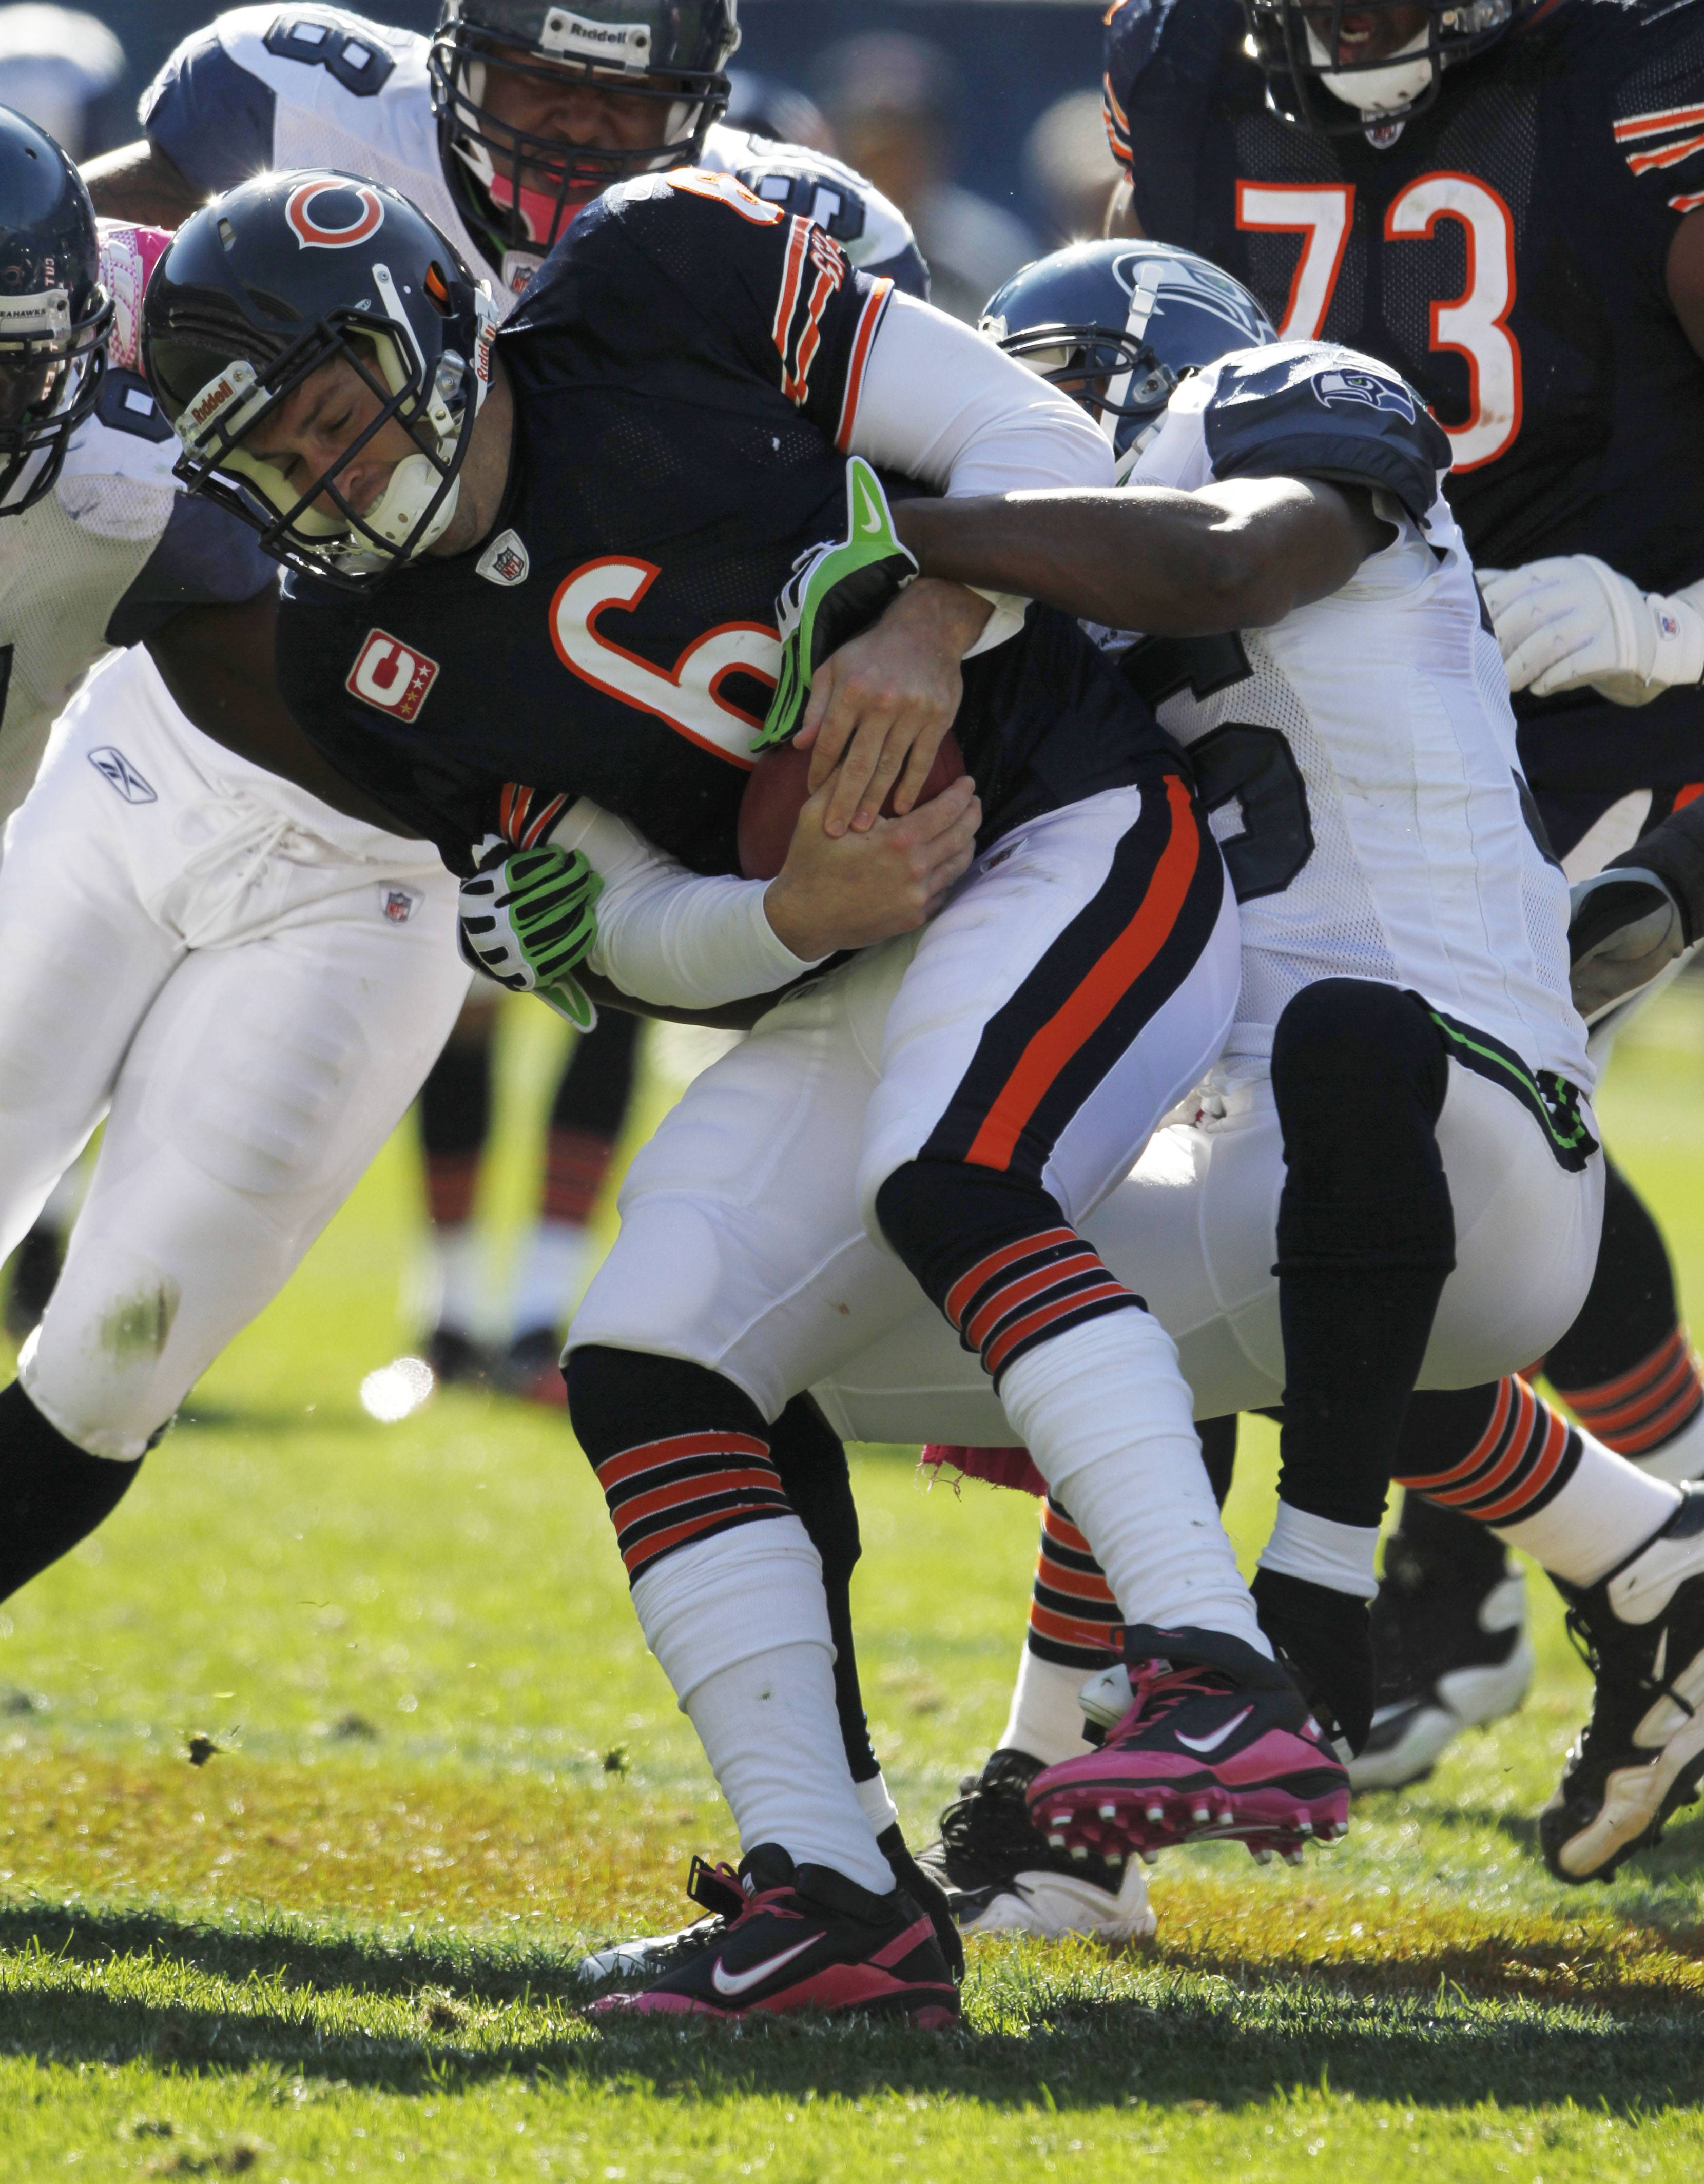 Bears quarterback Jay Cutler is sacked by Seattle Seahawks safety Lawyer Milloy in the second half.